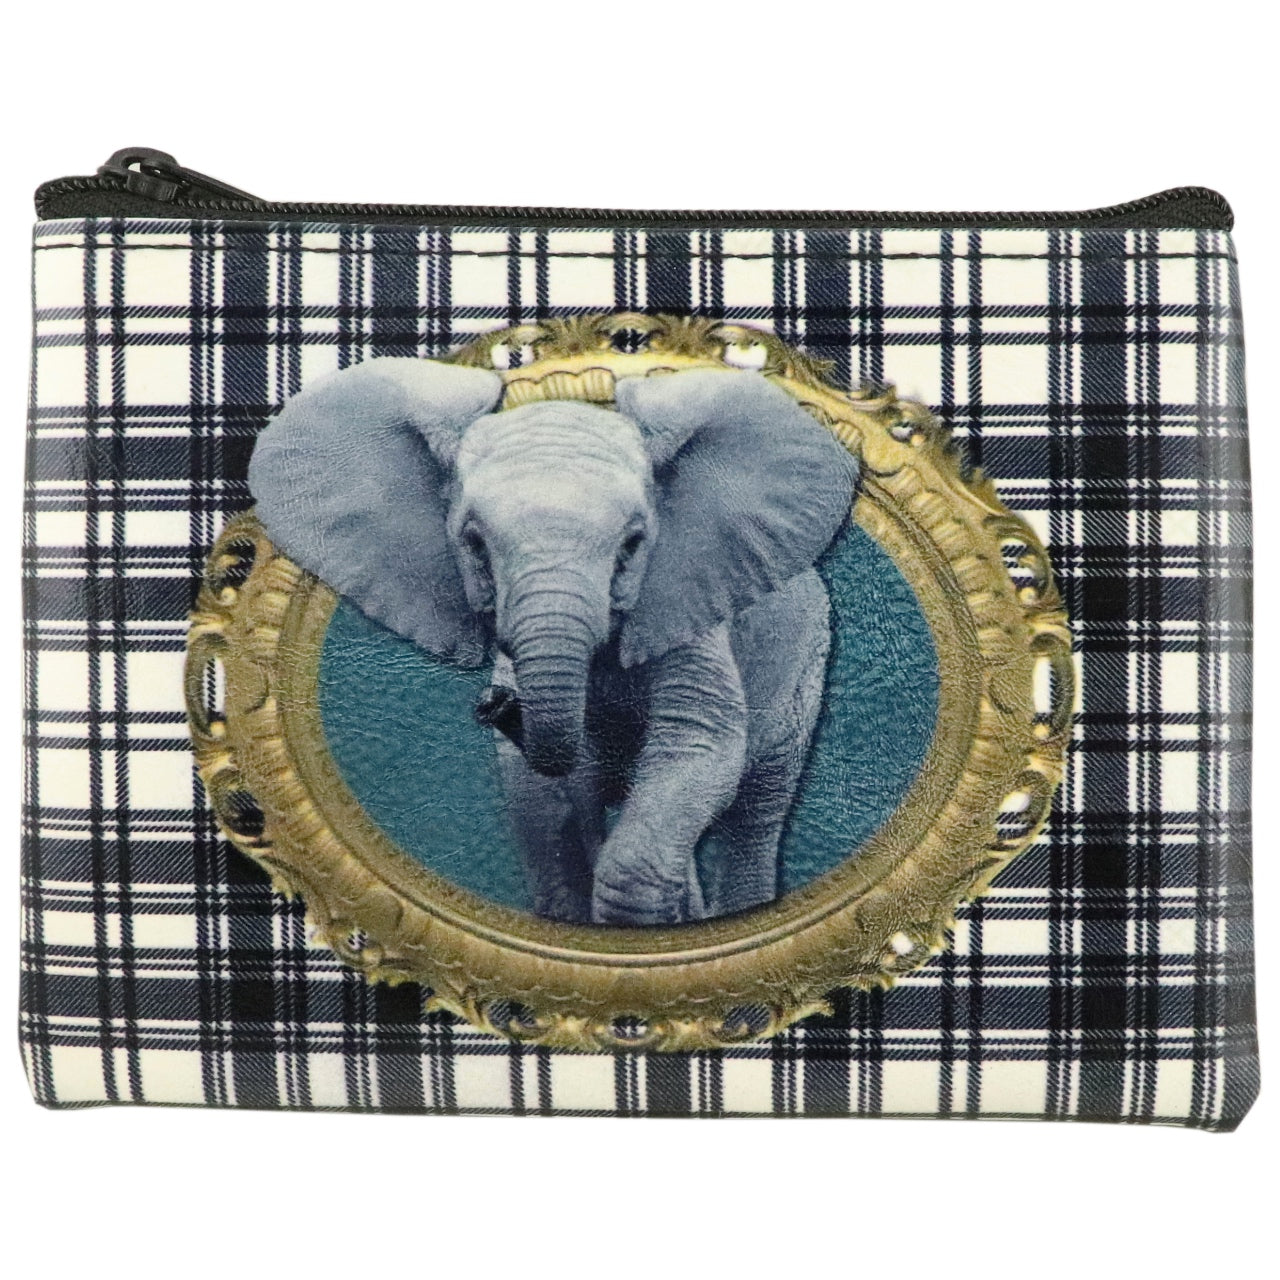 Lavishy Liano Coin Purse -Elephant